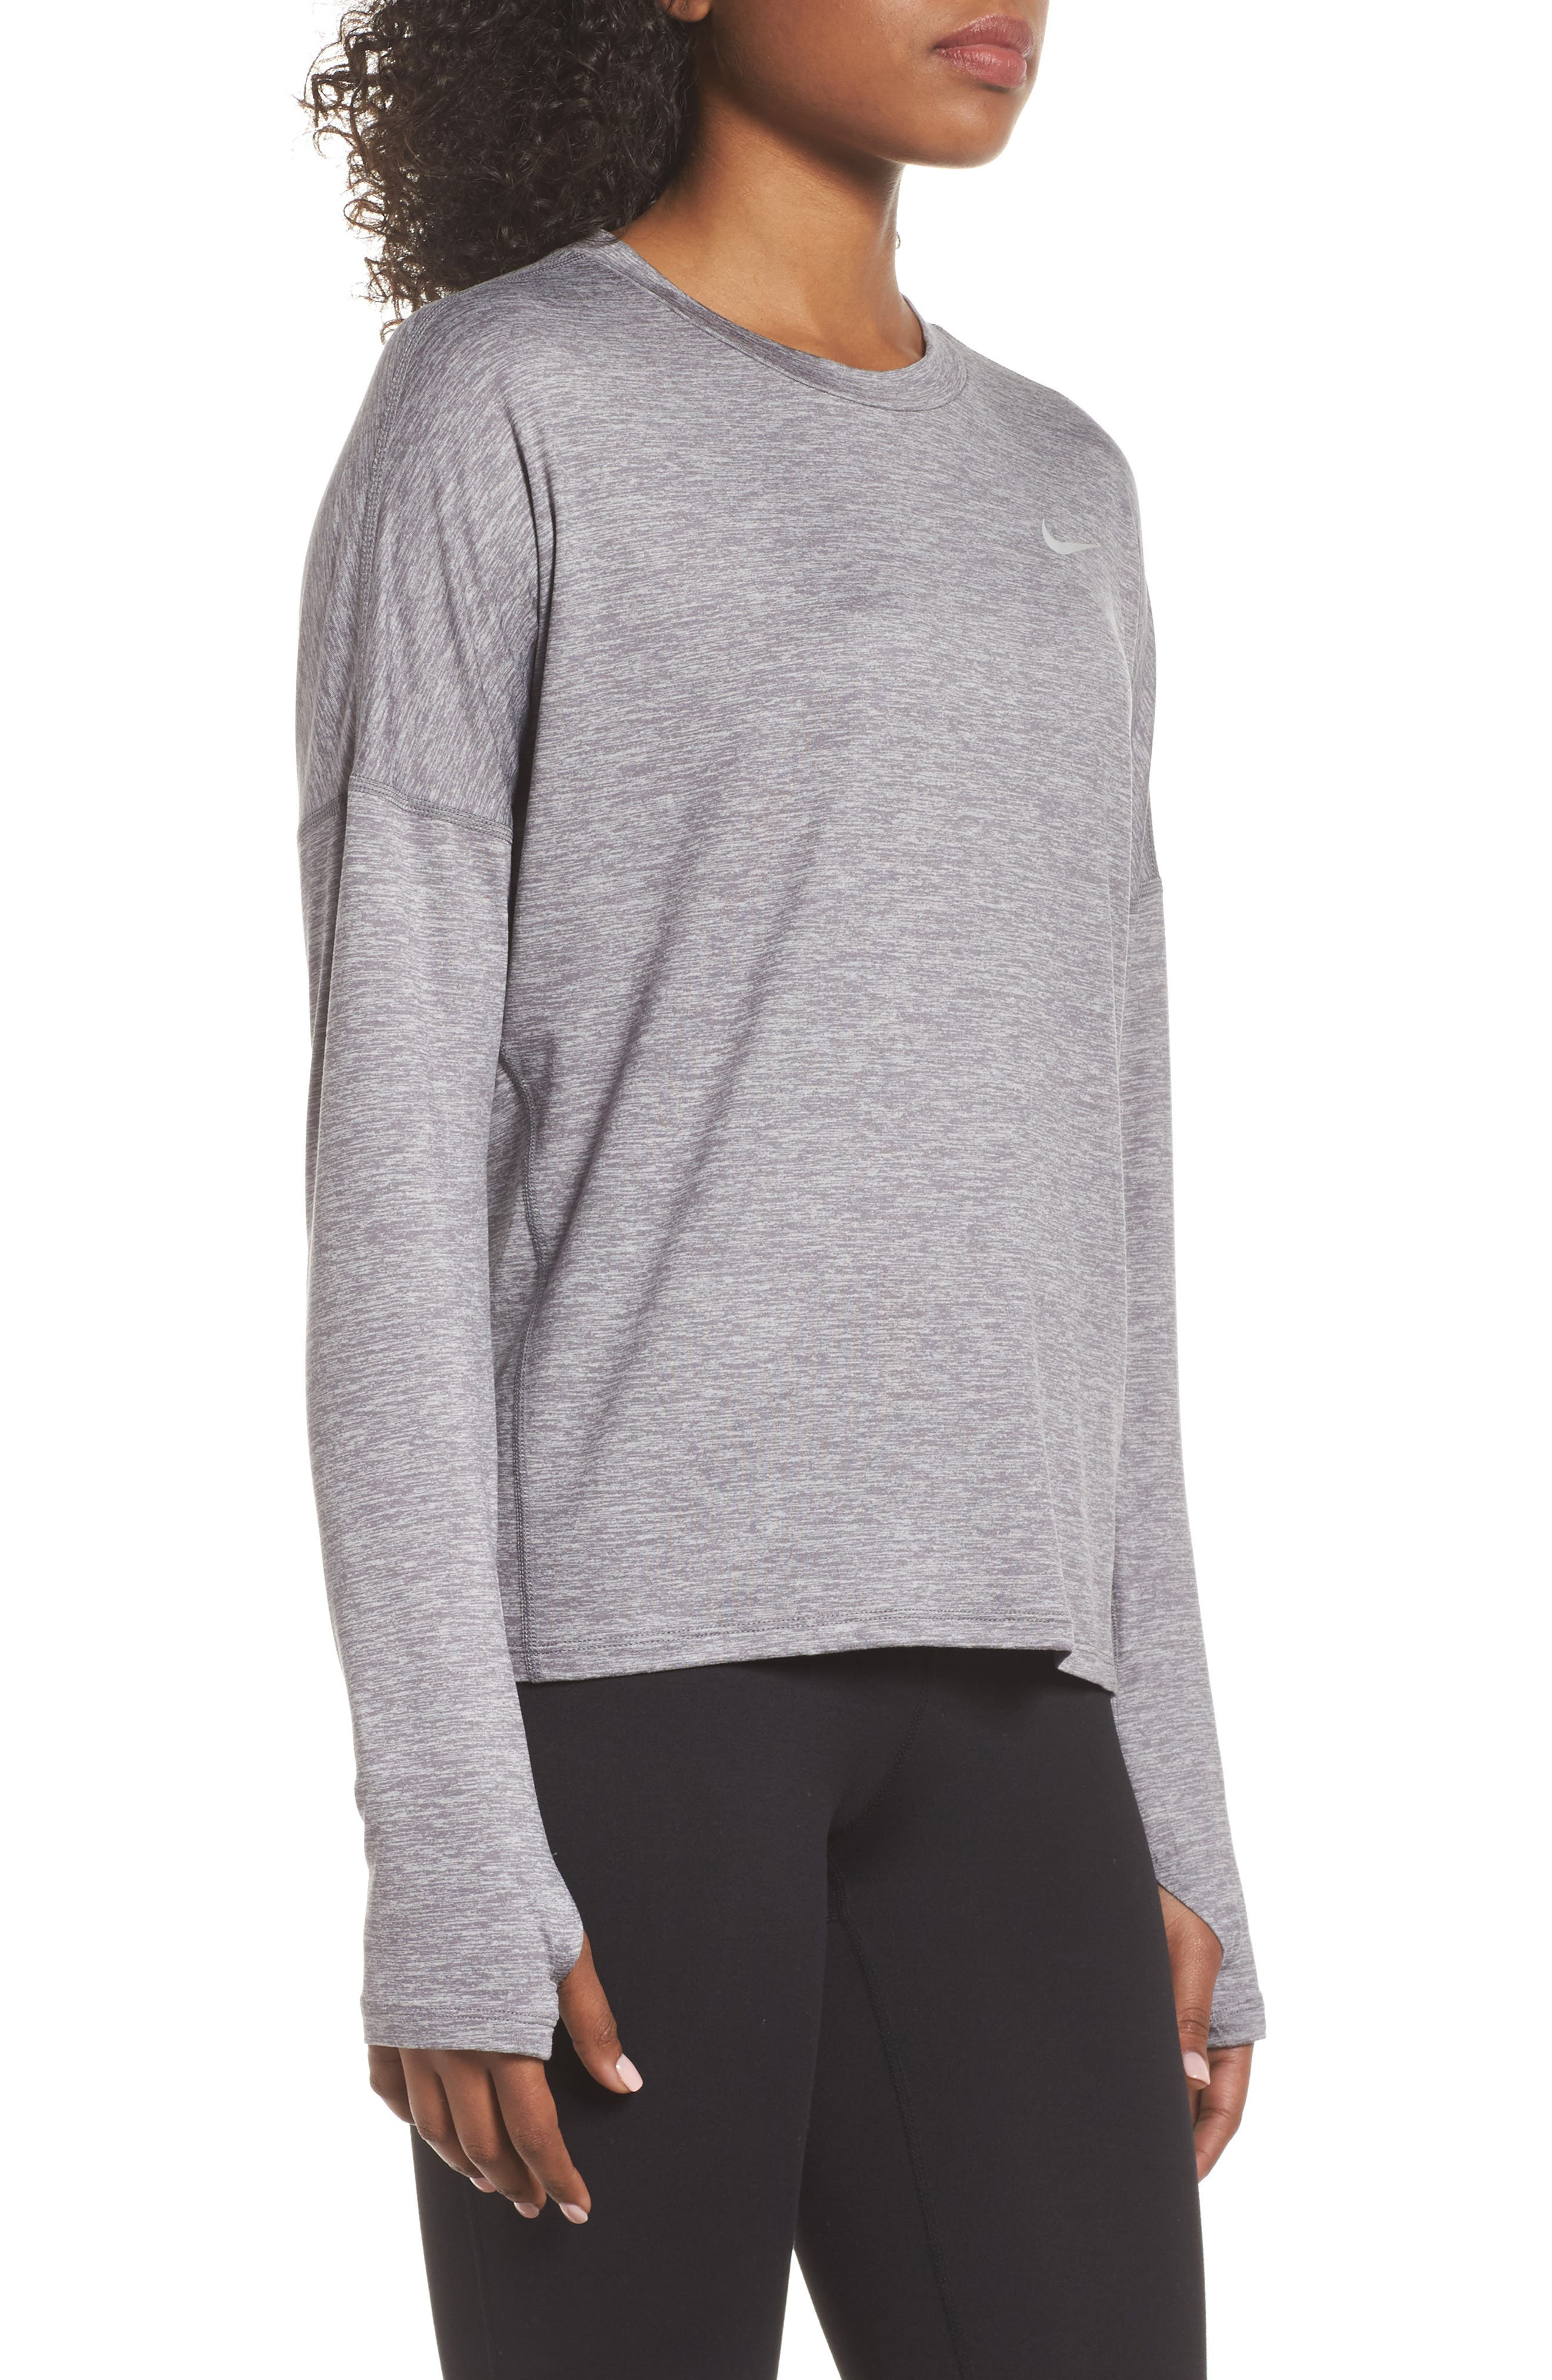 NIKE,                             Dry Element Long Sleeve Top,                             Alternate thumbnail 3, color,                             036